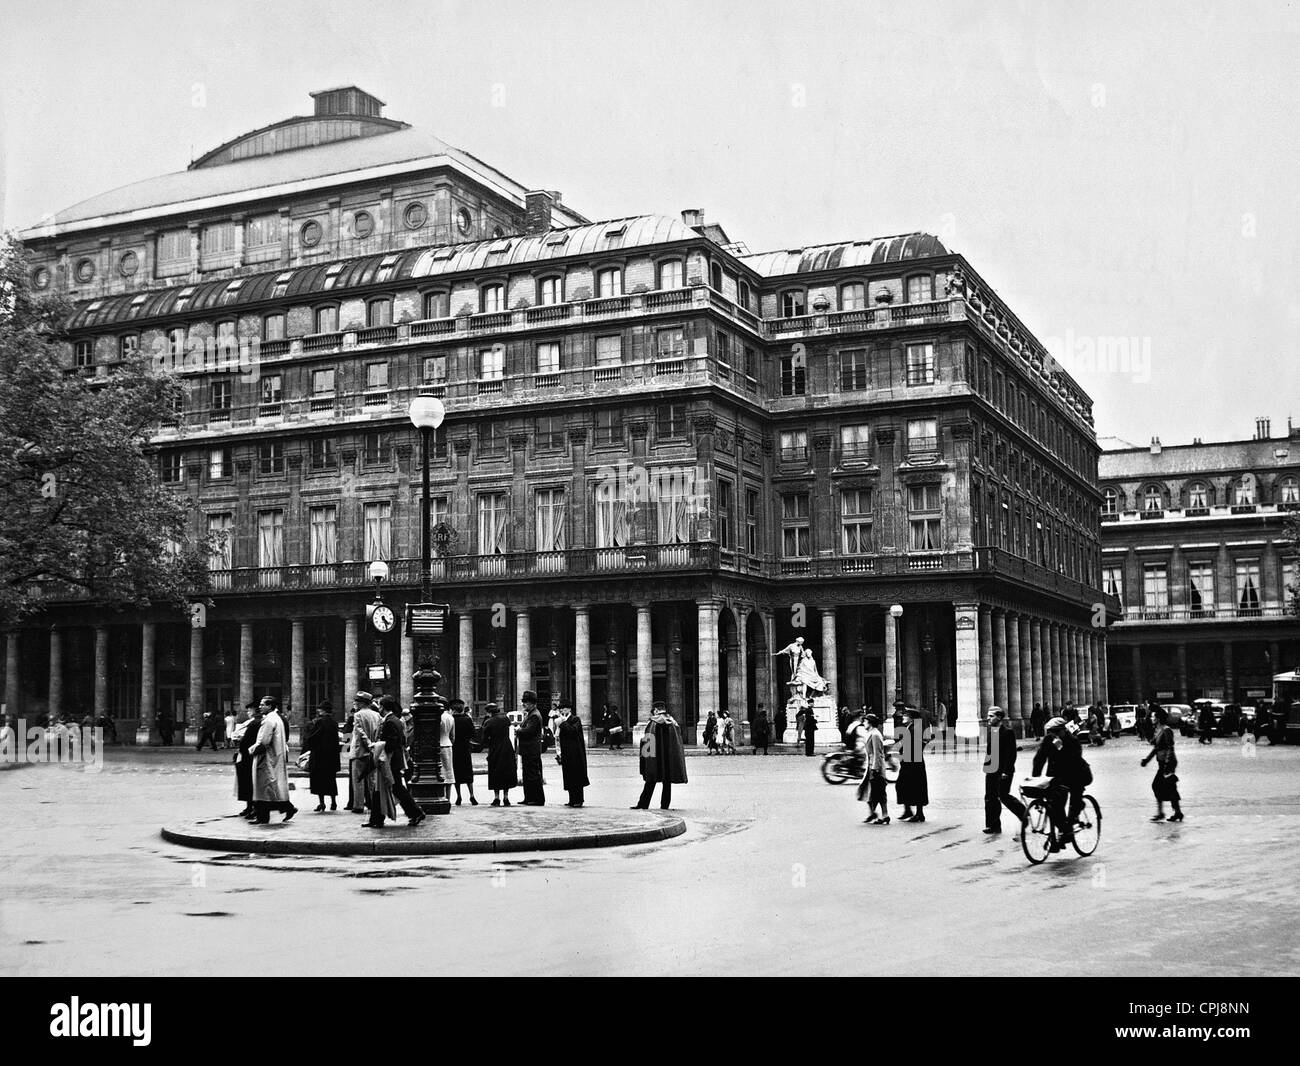 Comedie Francaise in Paris, 1938 - Stock Image